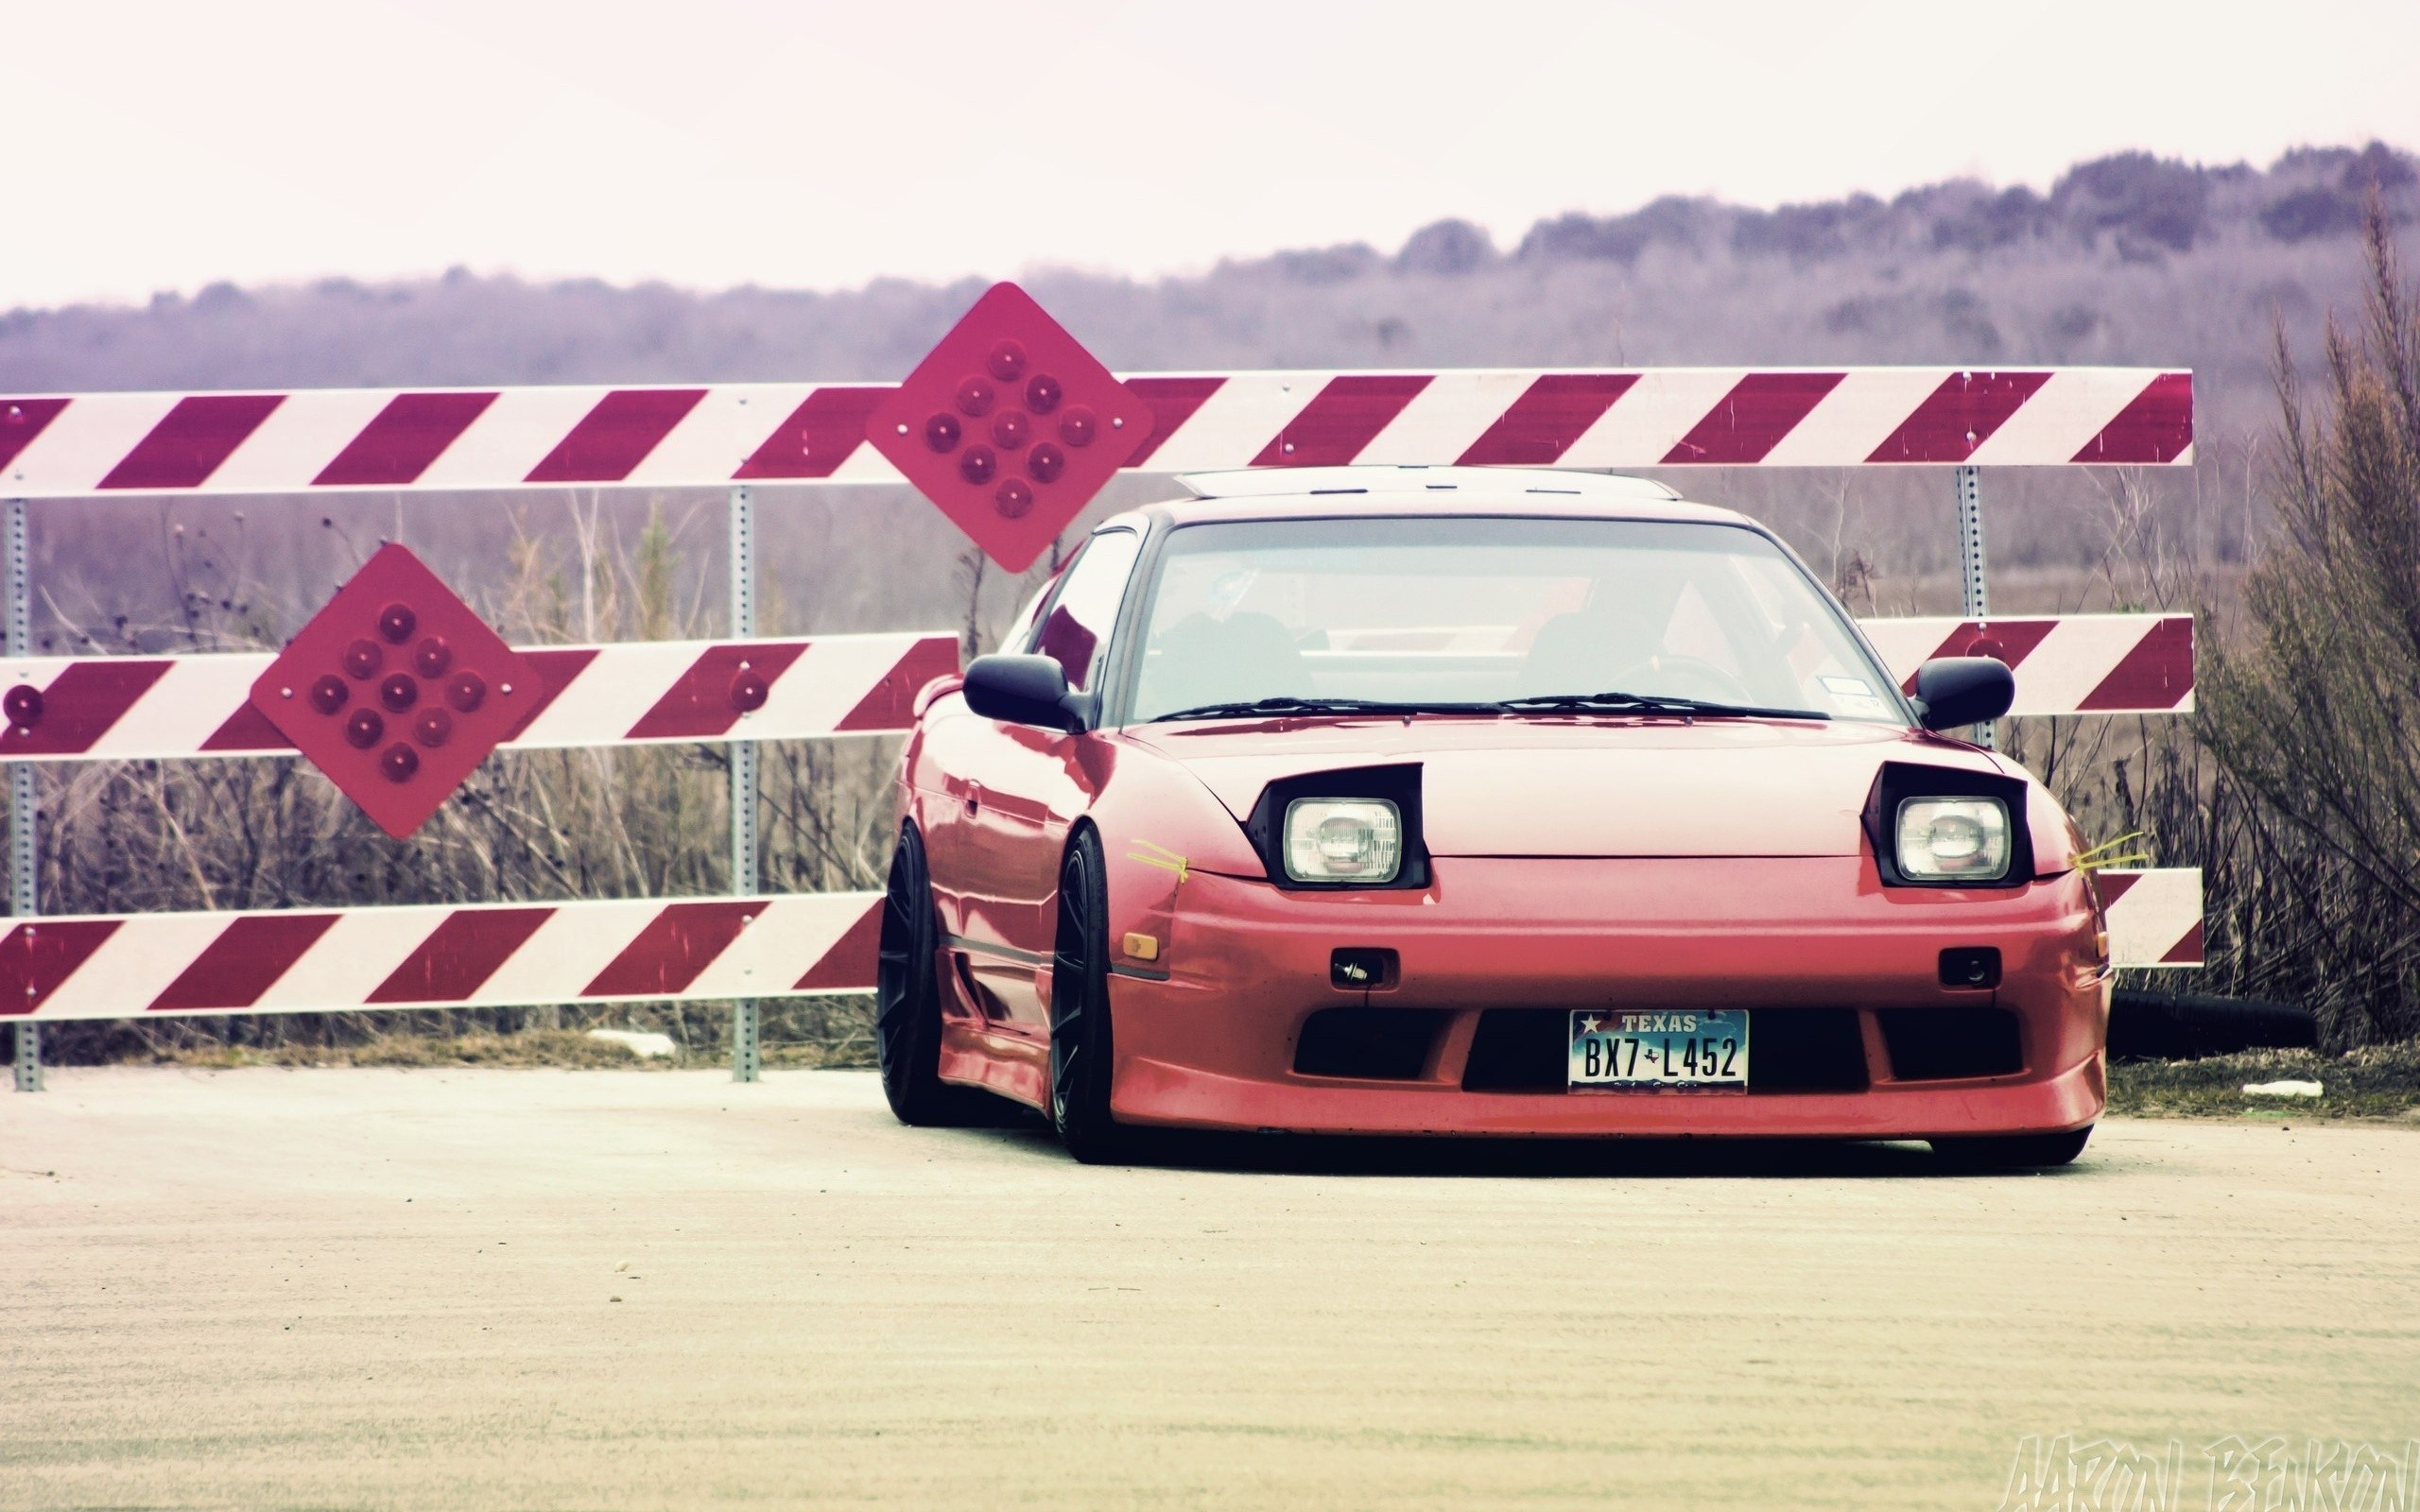 UHW.33UHW Stance Pics - B.SCB Wallpapers